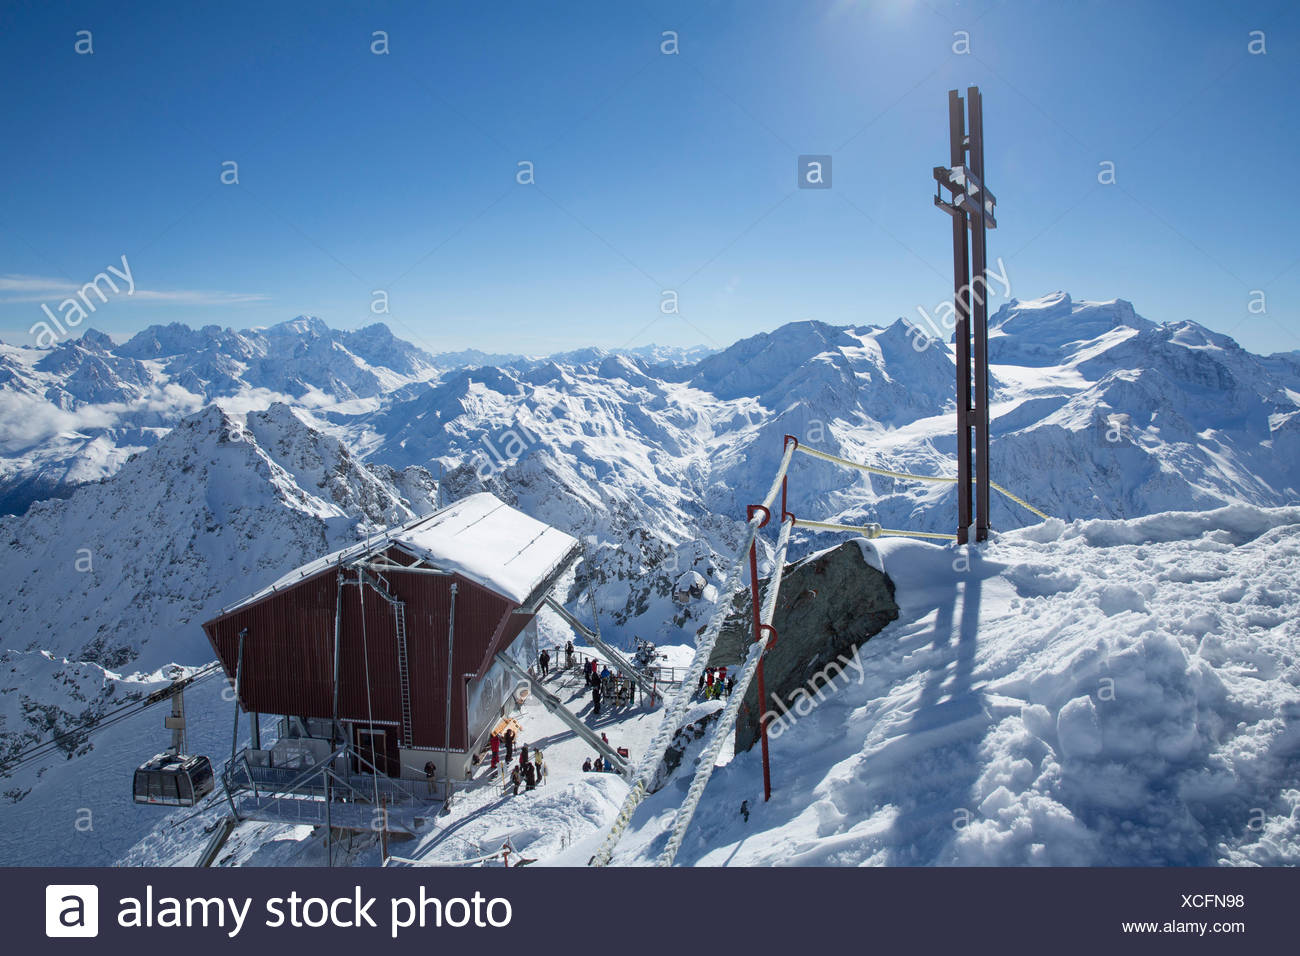 Mont fort, ropeway, cable railway, Mont fort, Verbier, view, Grand Combin, Montblanc, winter, canton, VS, Valais, mountain, moun Stock Photo